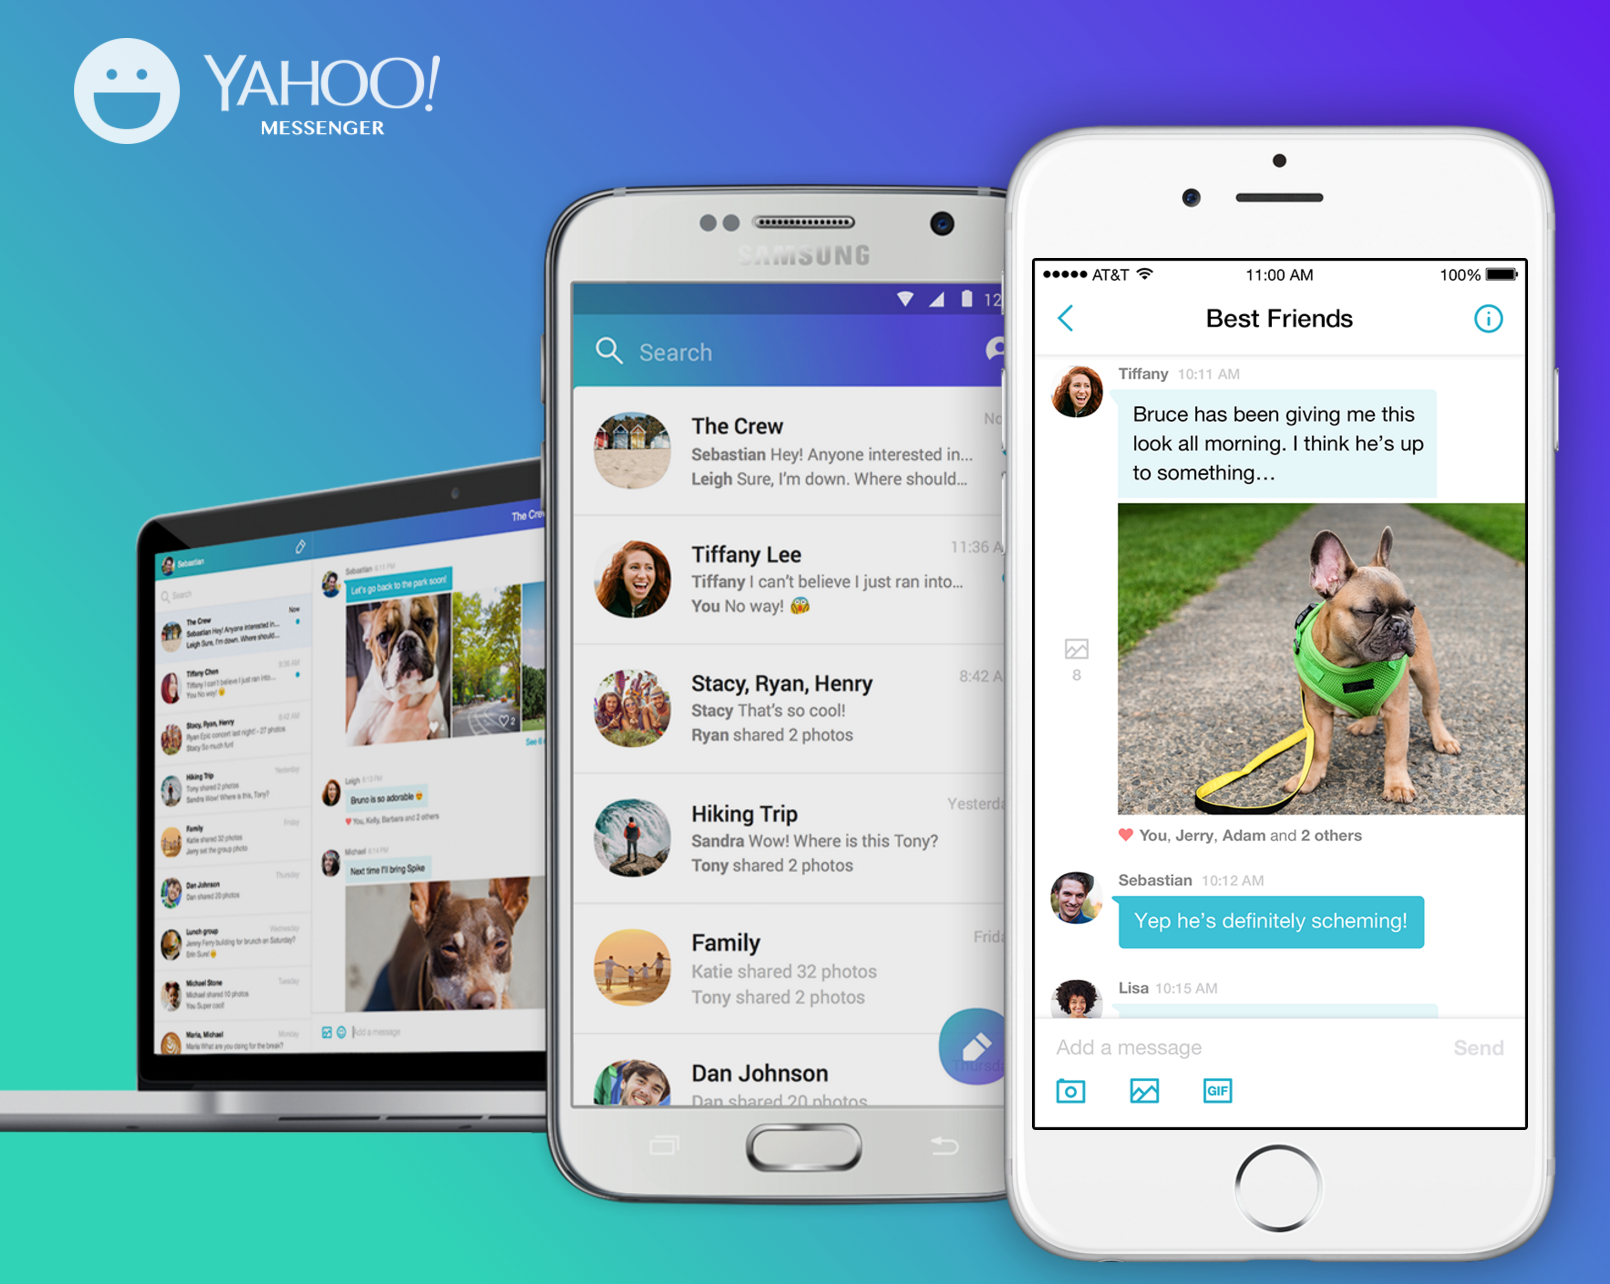 The message is lost: Yahoo kills off its Messenger service